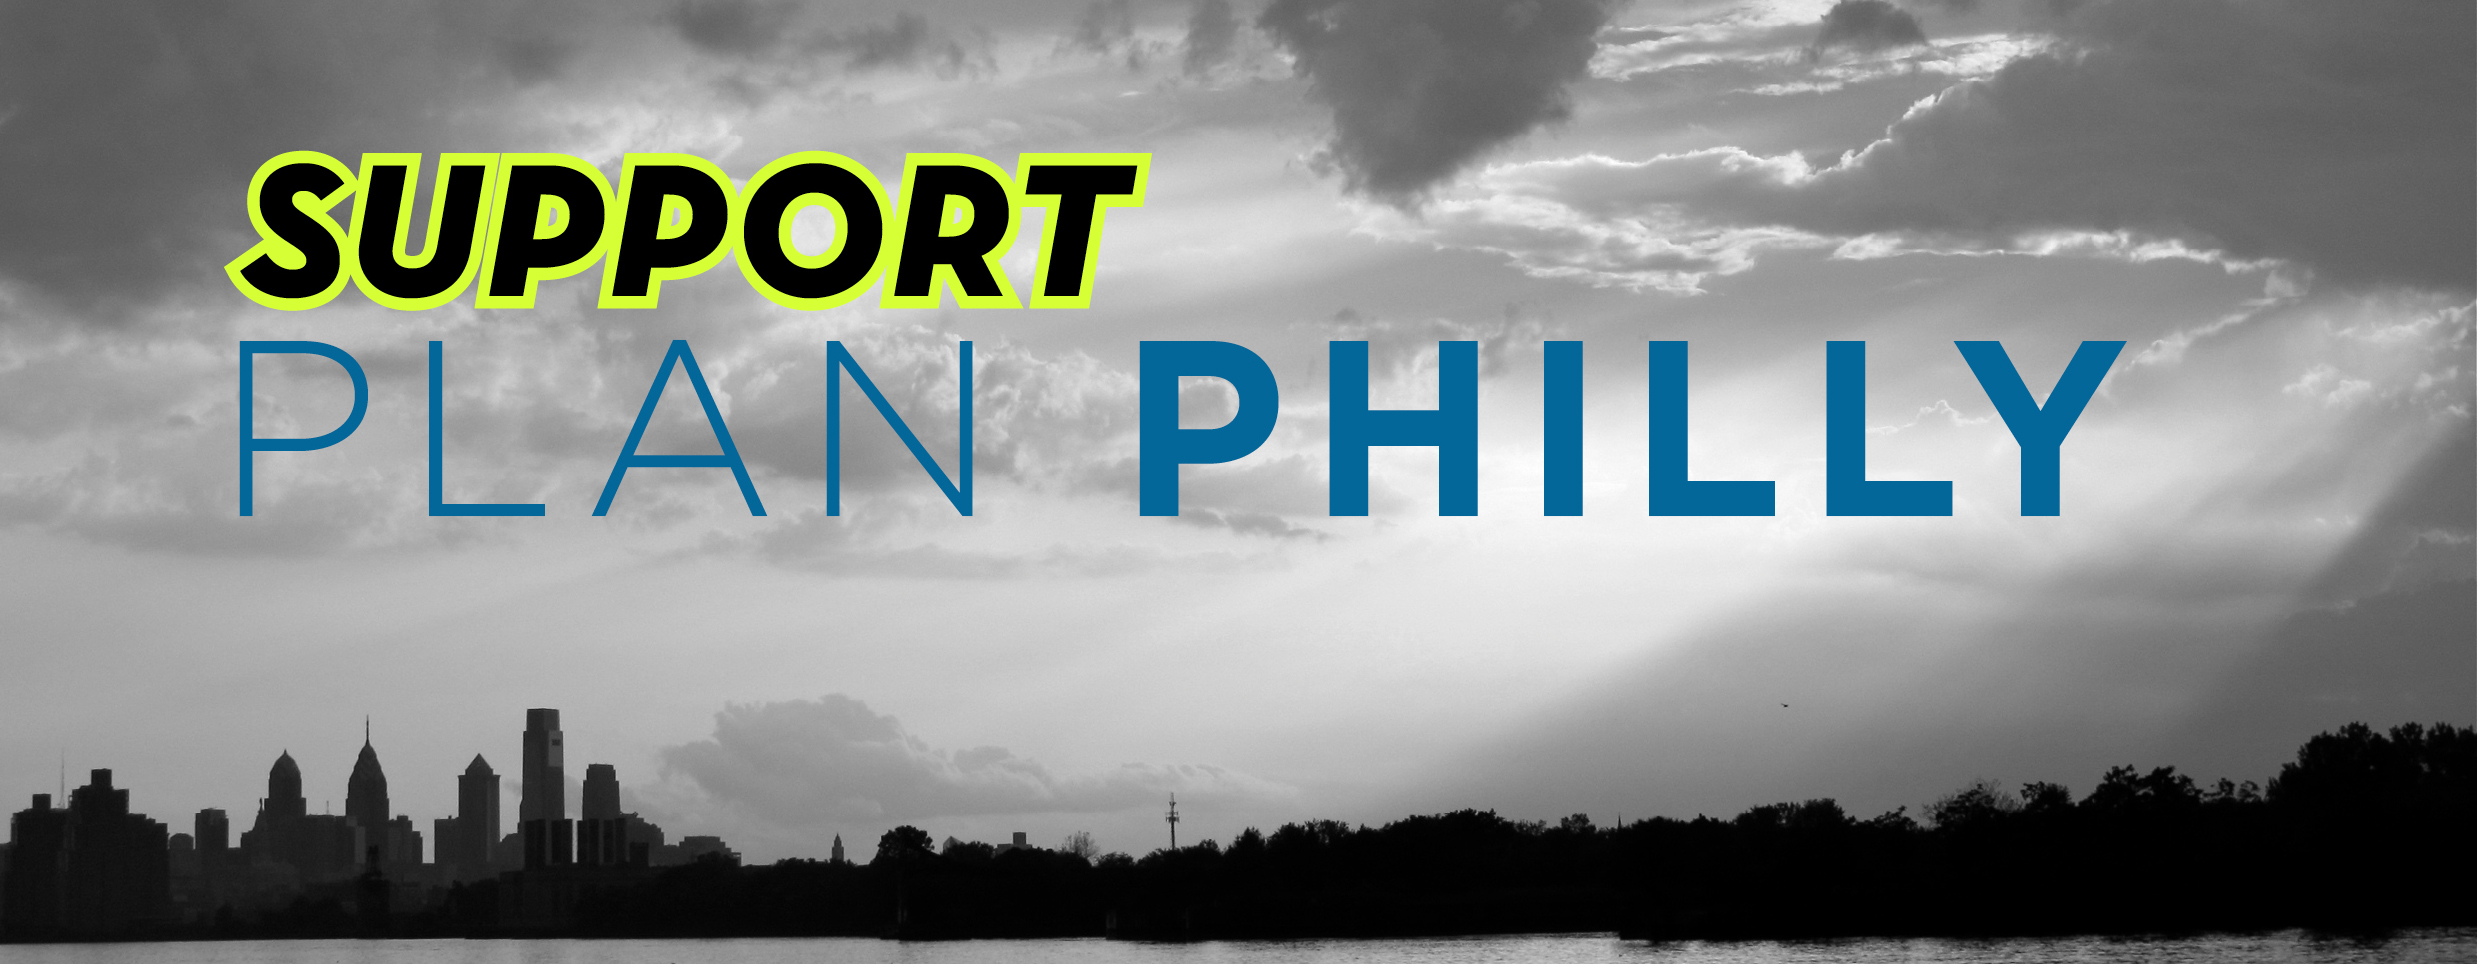 PlanPhilly-skyline-support2.jpg